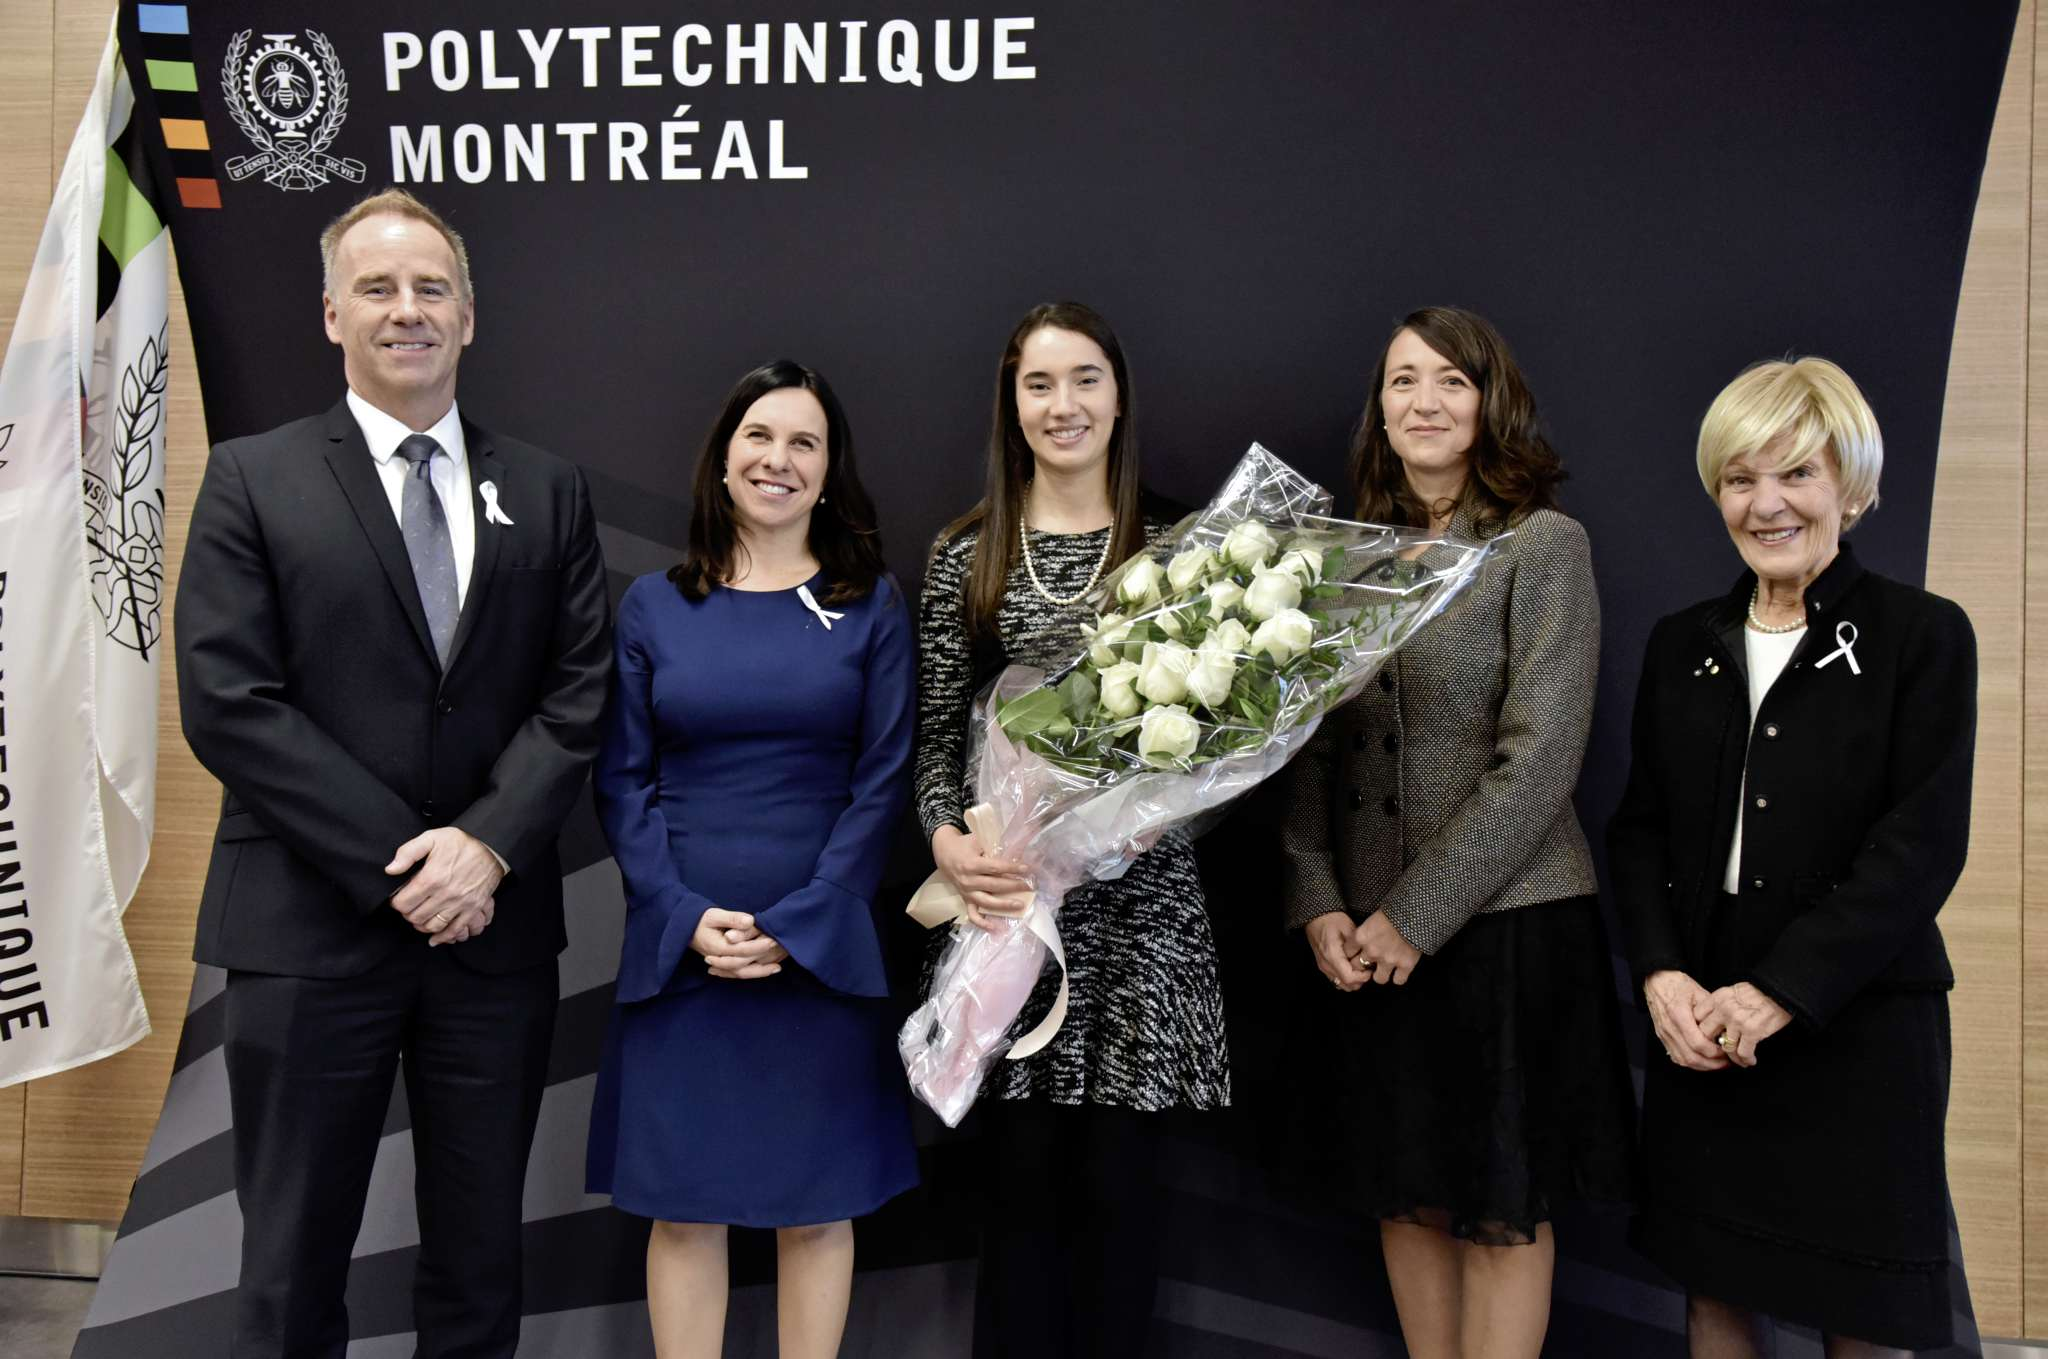 """(From left) François Bertrand, Polytechnique Montréal's interim CEO and chief research, innovation and international officer; Valérie Plante, Mayor of Montréal; Ella Thomson; Nathalie Provost, who was injured in the 1989 tragedy at the school and is """"Godmother"""" of the Order of the White Rose; and Michèle Thibodeau-DeGuire, principal and chair of the board of directors of Polytechnique Montréal, who is also president of the Order of the White Rose jury."""